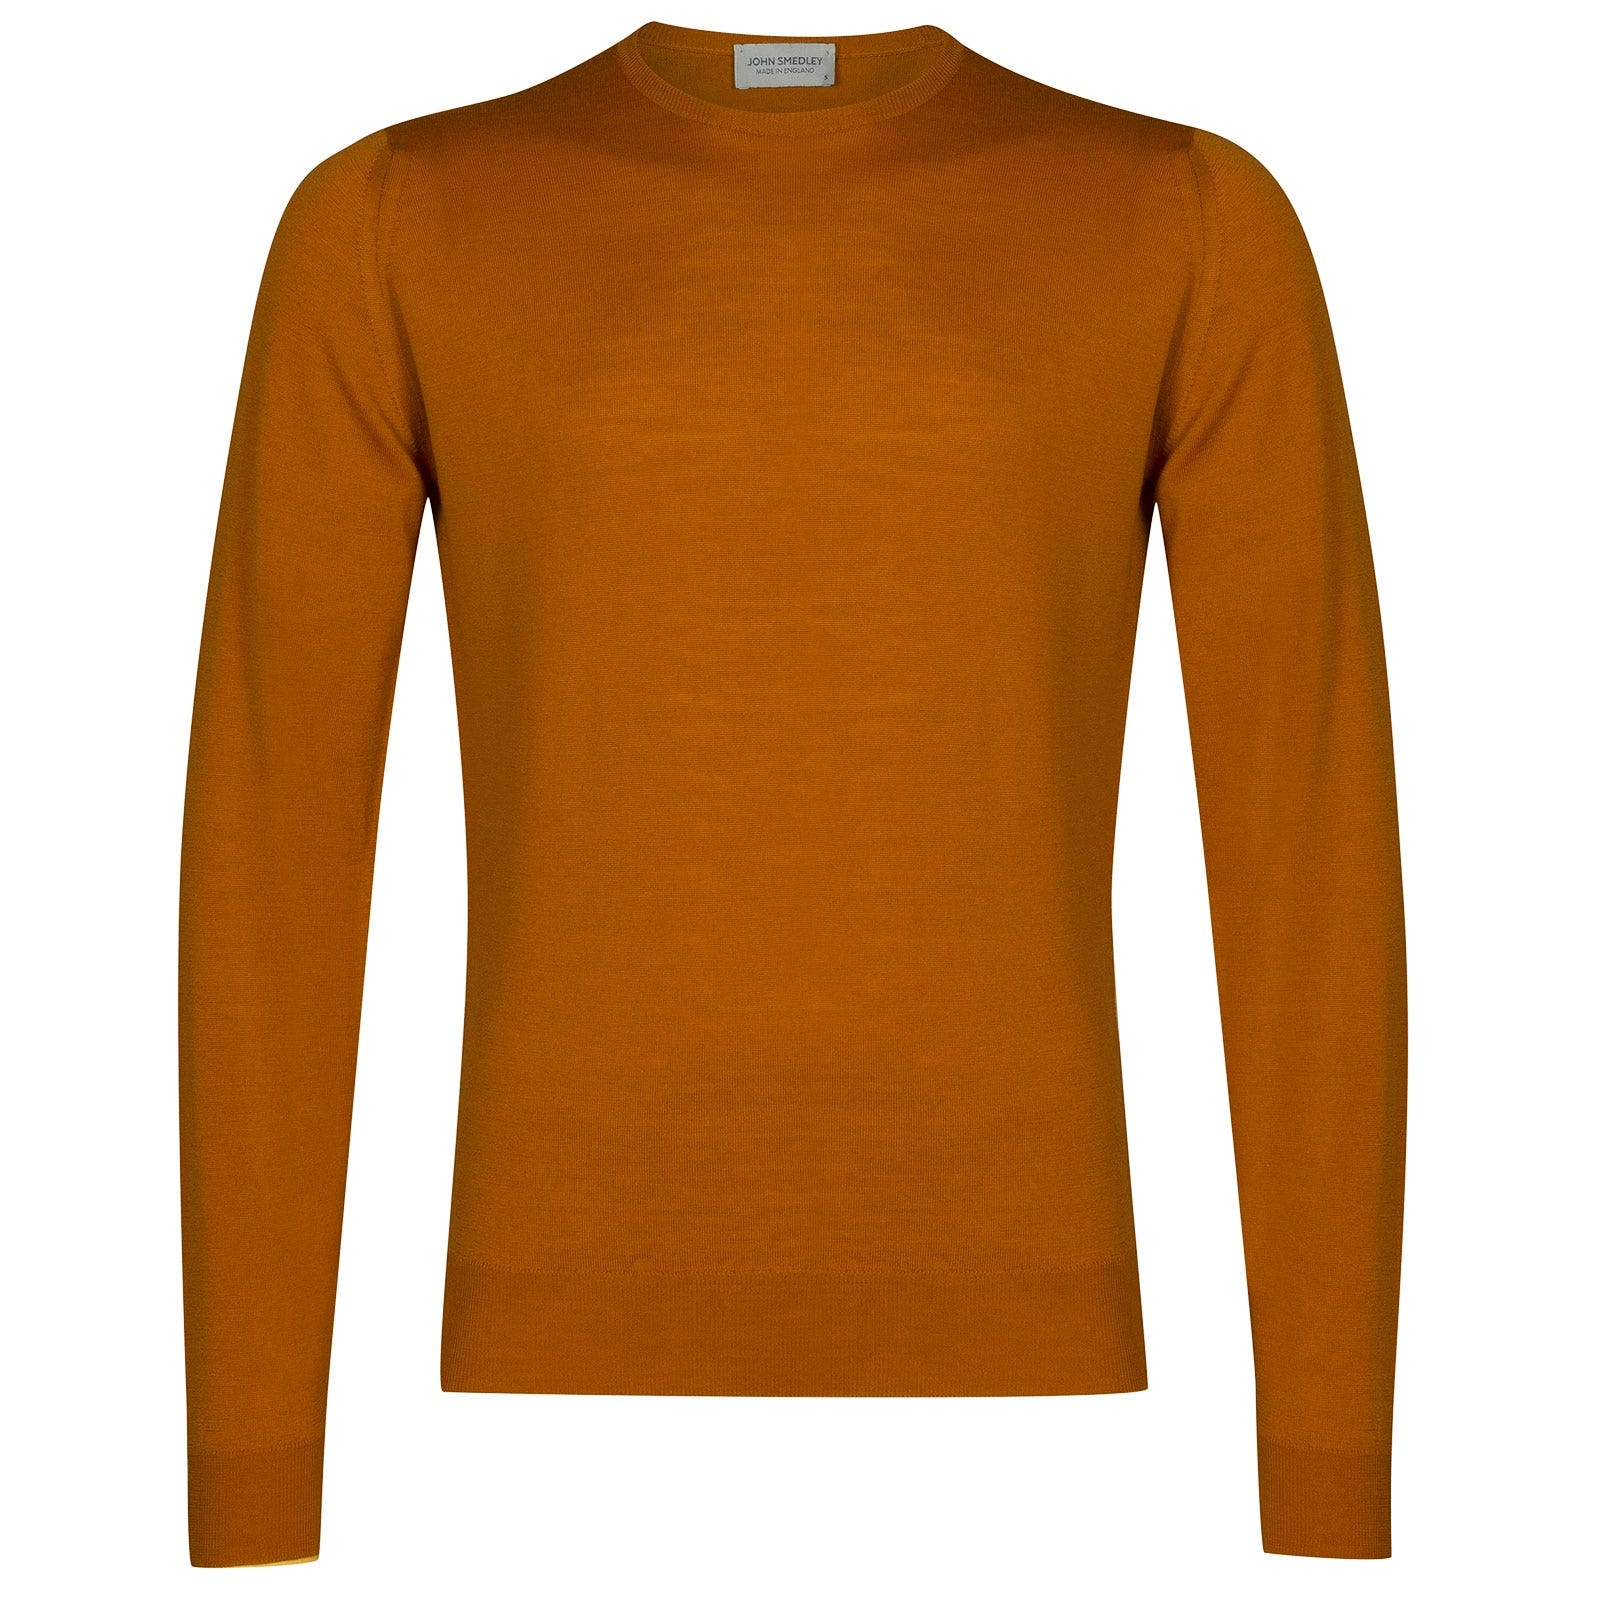 John Smedley Lundy Merino Wool Pullover in Bronze-XL